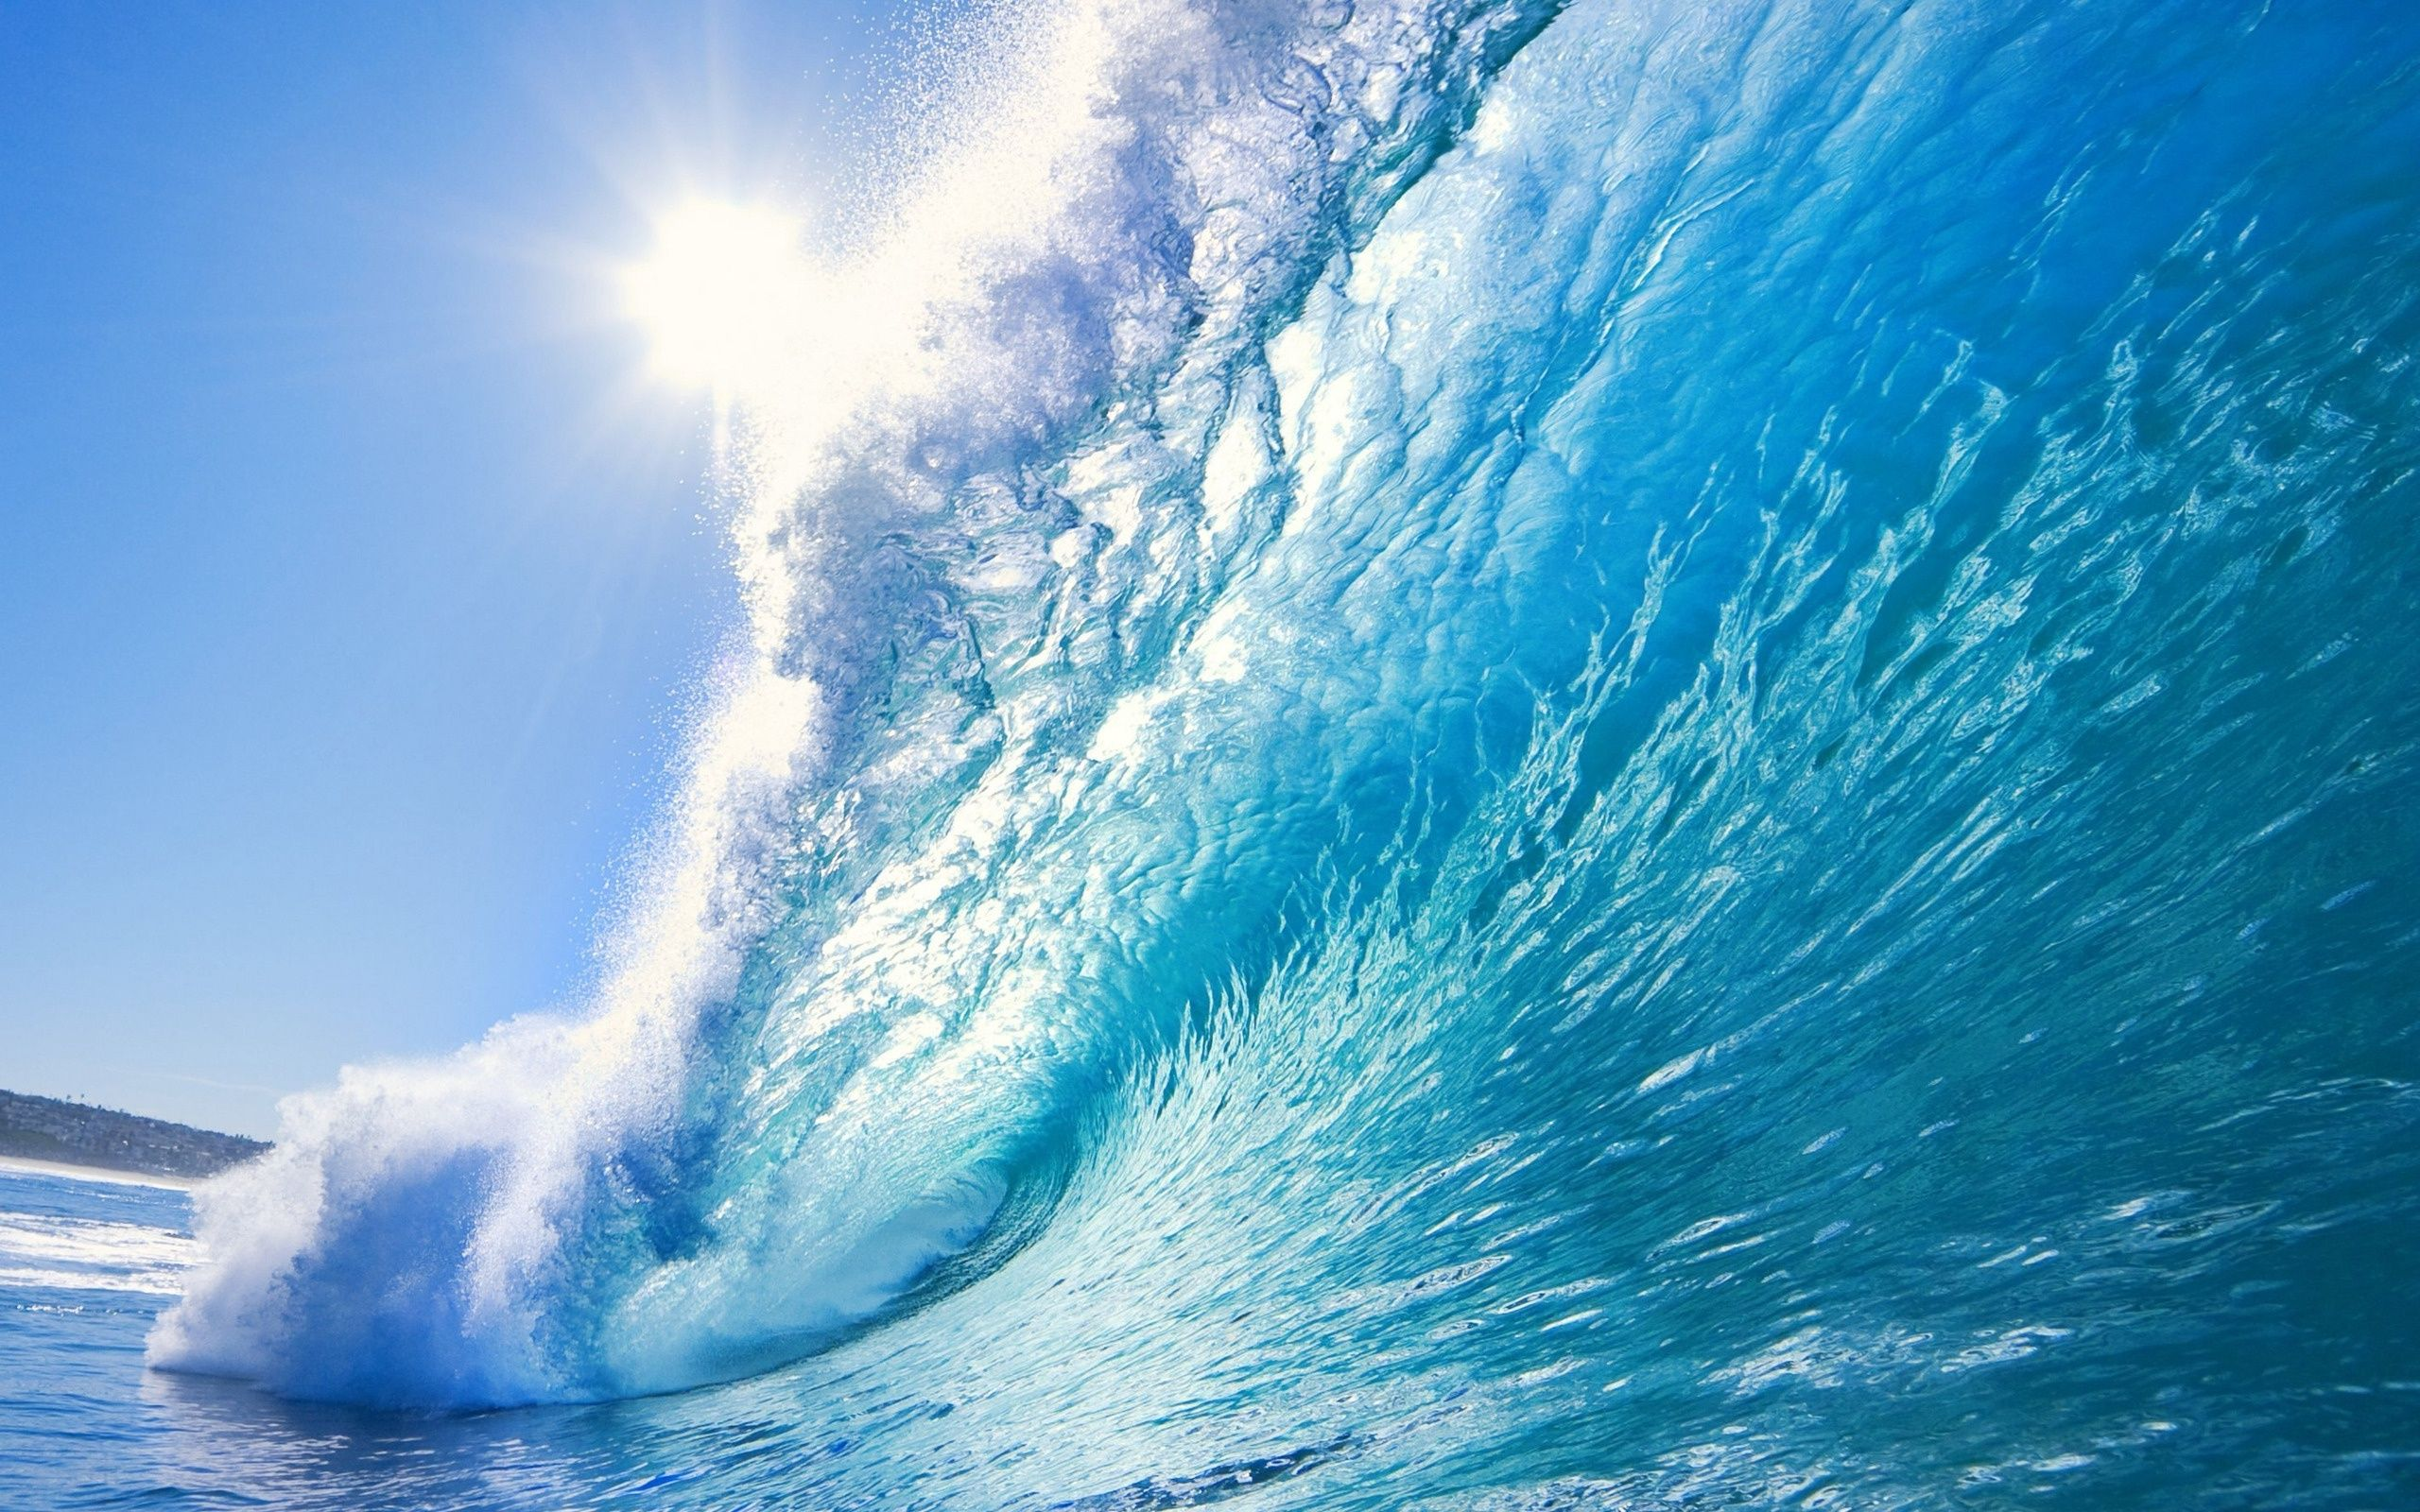 wallpapers of ocean ocean background wallpapers ocean wallpapers 2560x1600